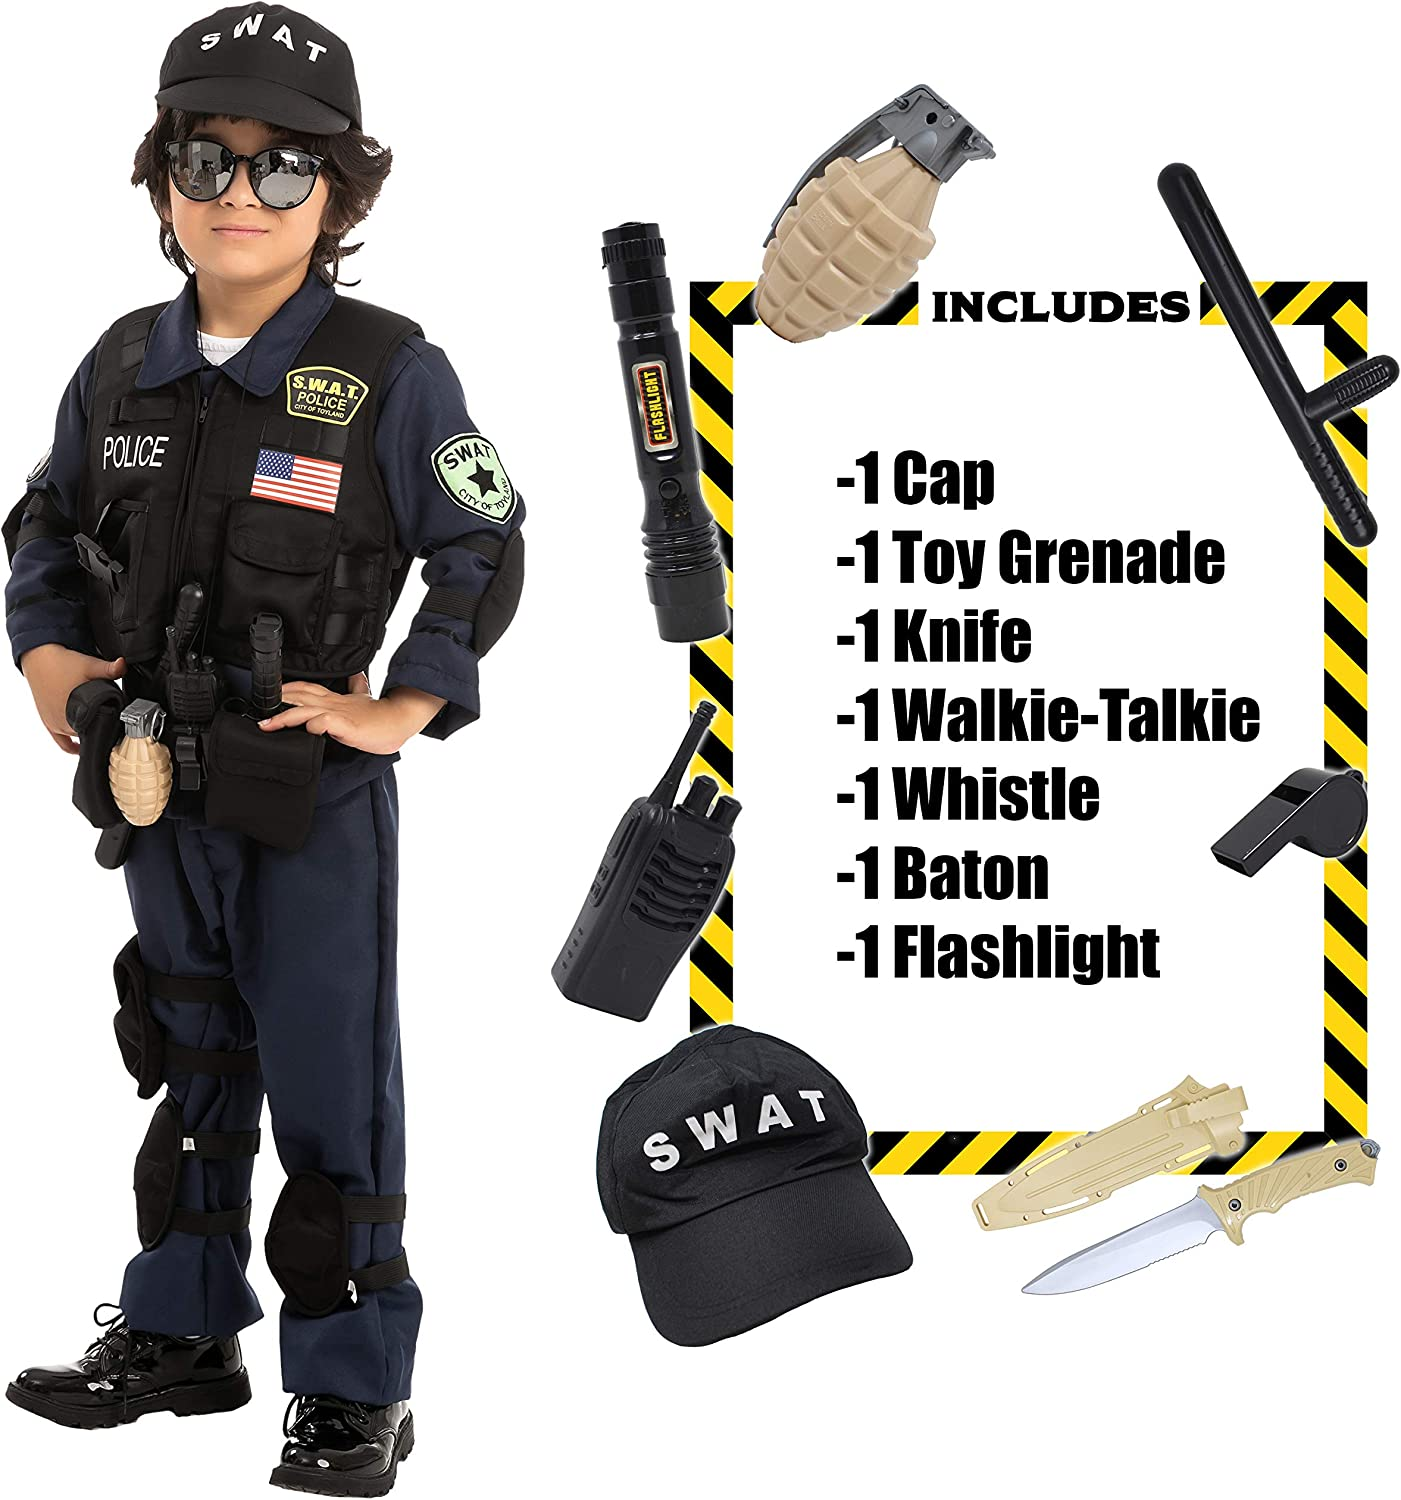 Spooktacular Creations Police SWAT Costume for Kids Halloween Cosplay, S.W.A.T. Police Officer